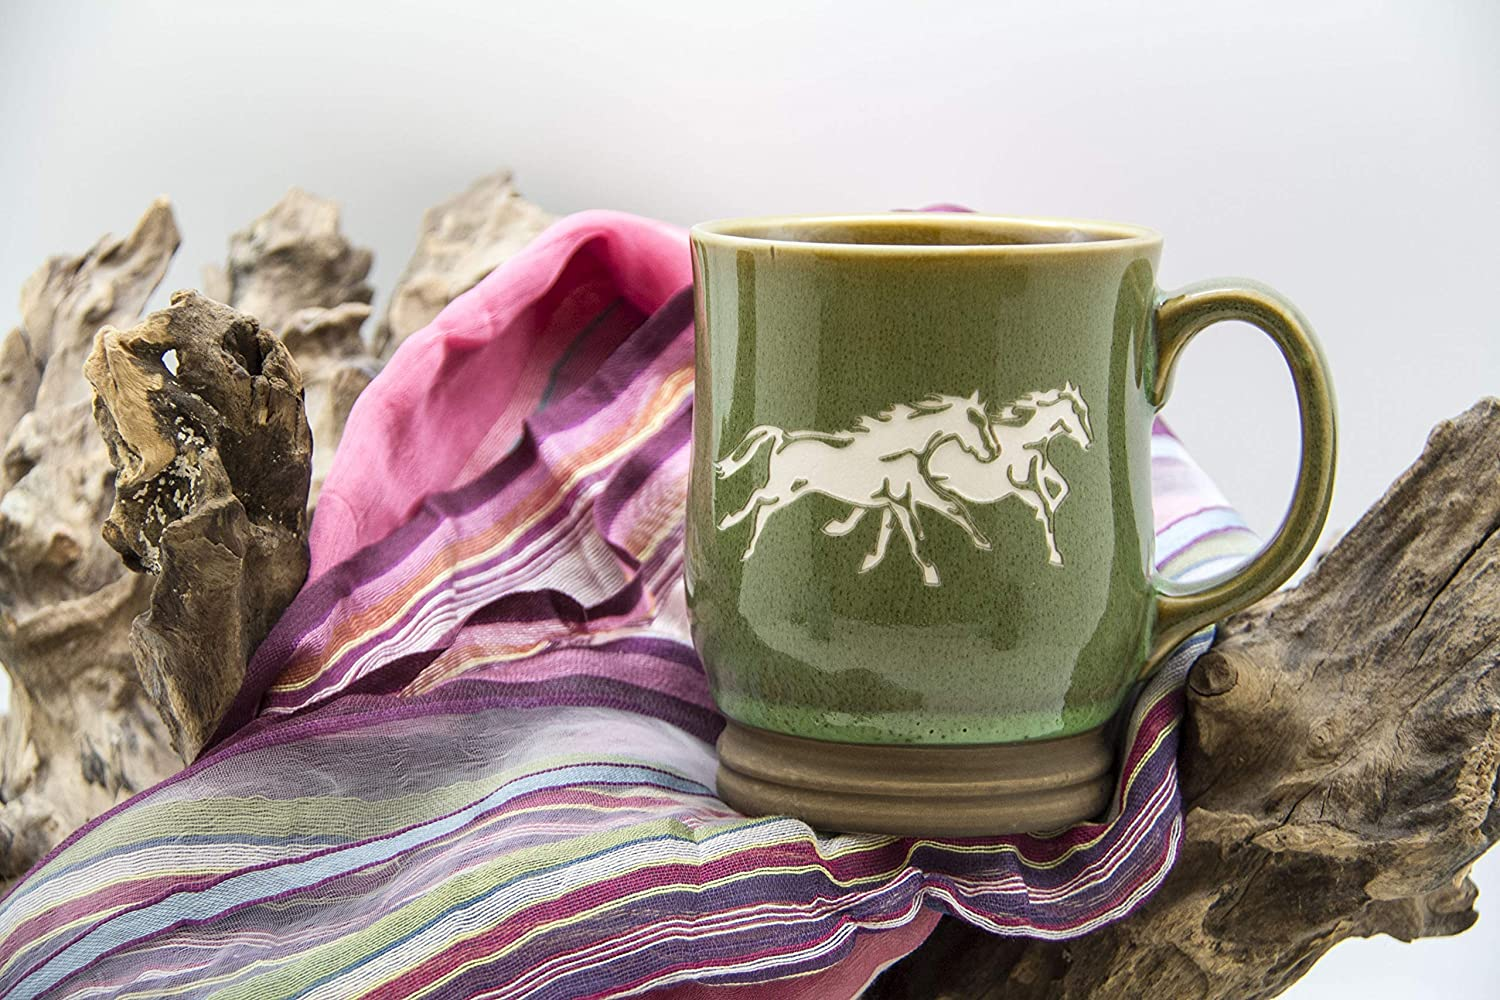 Green Ceramic Coffee Mug Sand Carved by Nostalgic Glass Works Hand Etched Running Horses